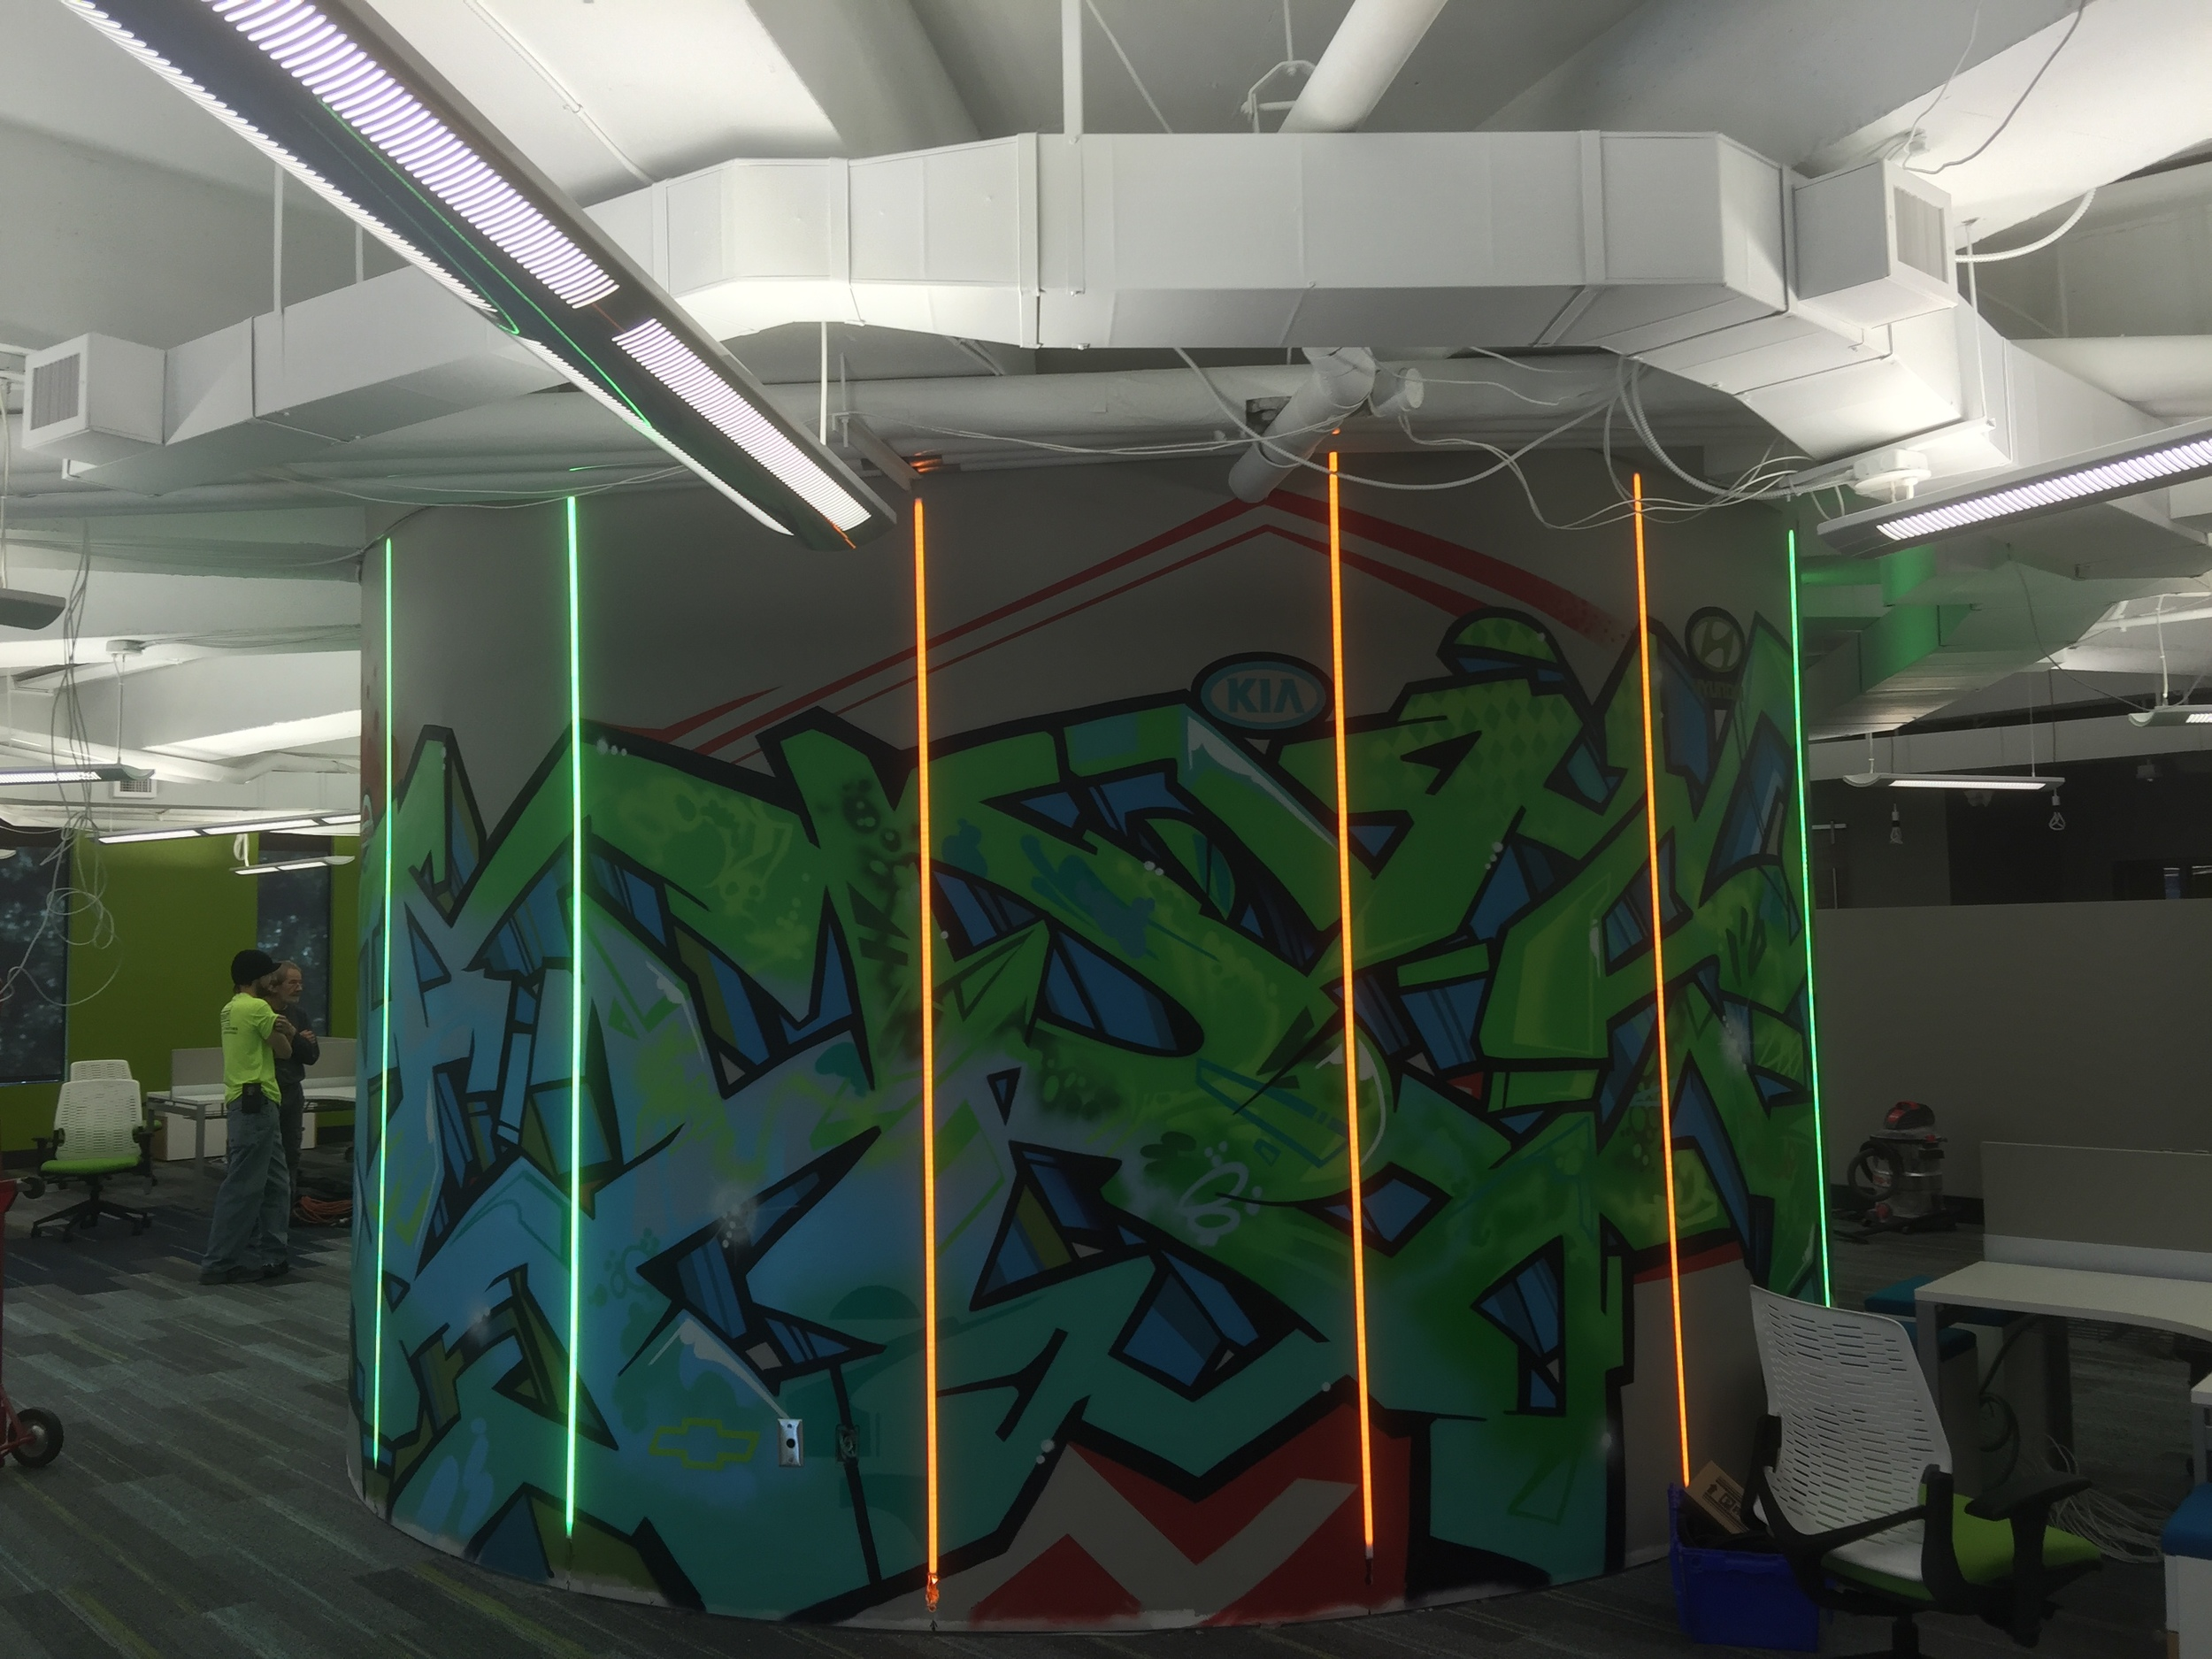 Strong Automotive's urban art within its Mountain Brook office. Embedded LEDcolor changing lighting add even more to this unique corporate art piece.